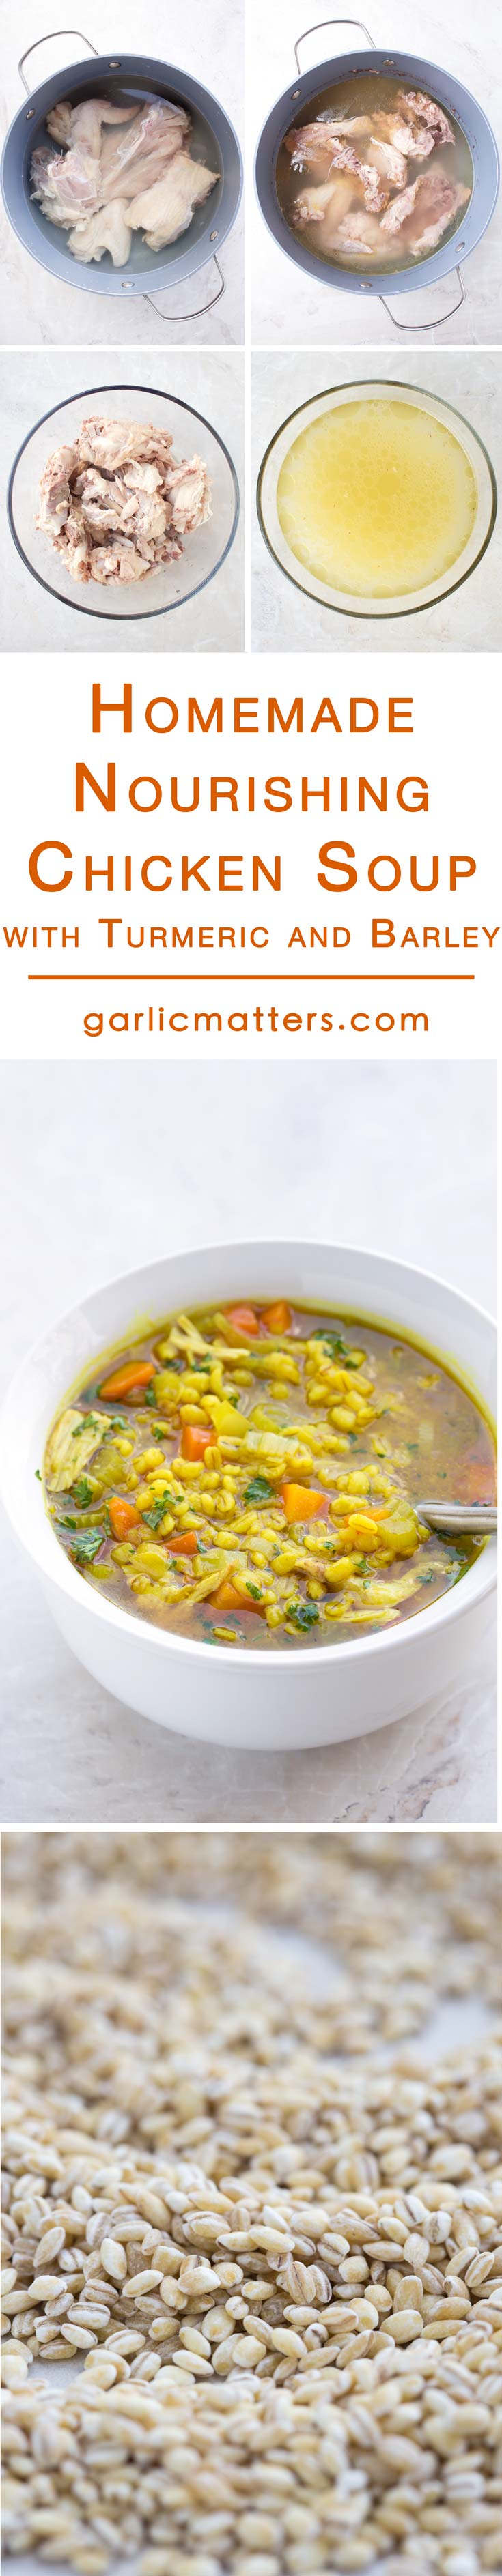 This is an easy, homemade, healing chicken soup recipe made from scratch, including the chicken stock! It has a chunky texture, but it is low carb at the same time. This old recipe is my go to in cold and flu season. It is healing and nurturing for the body and for the soul.